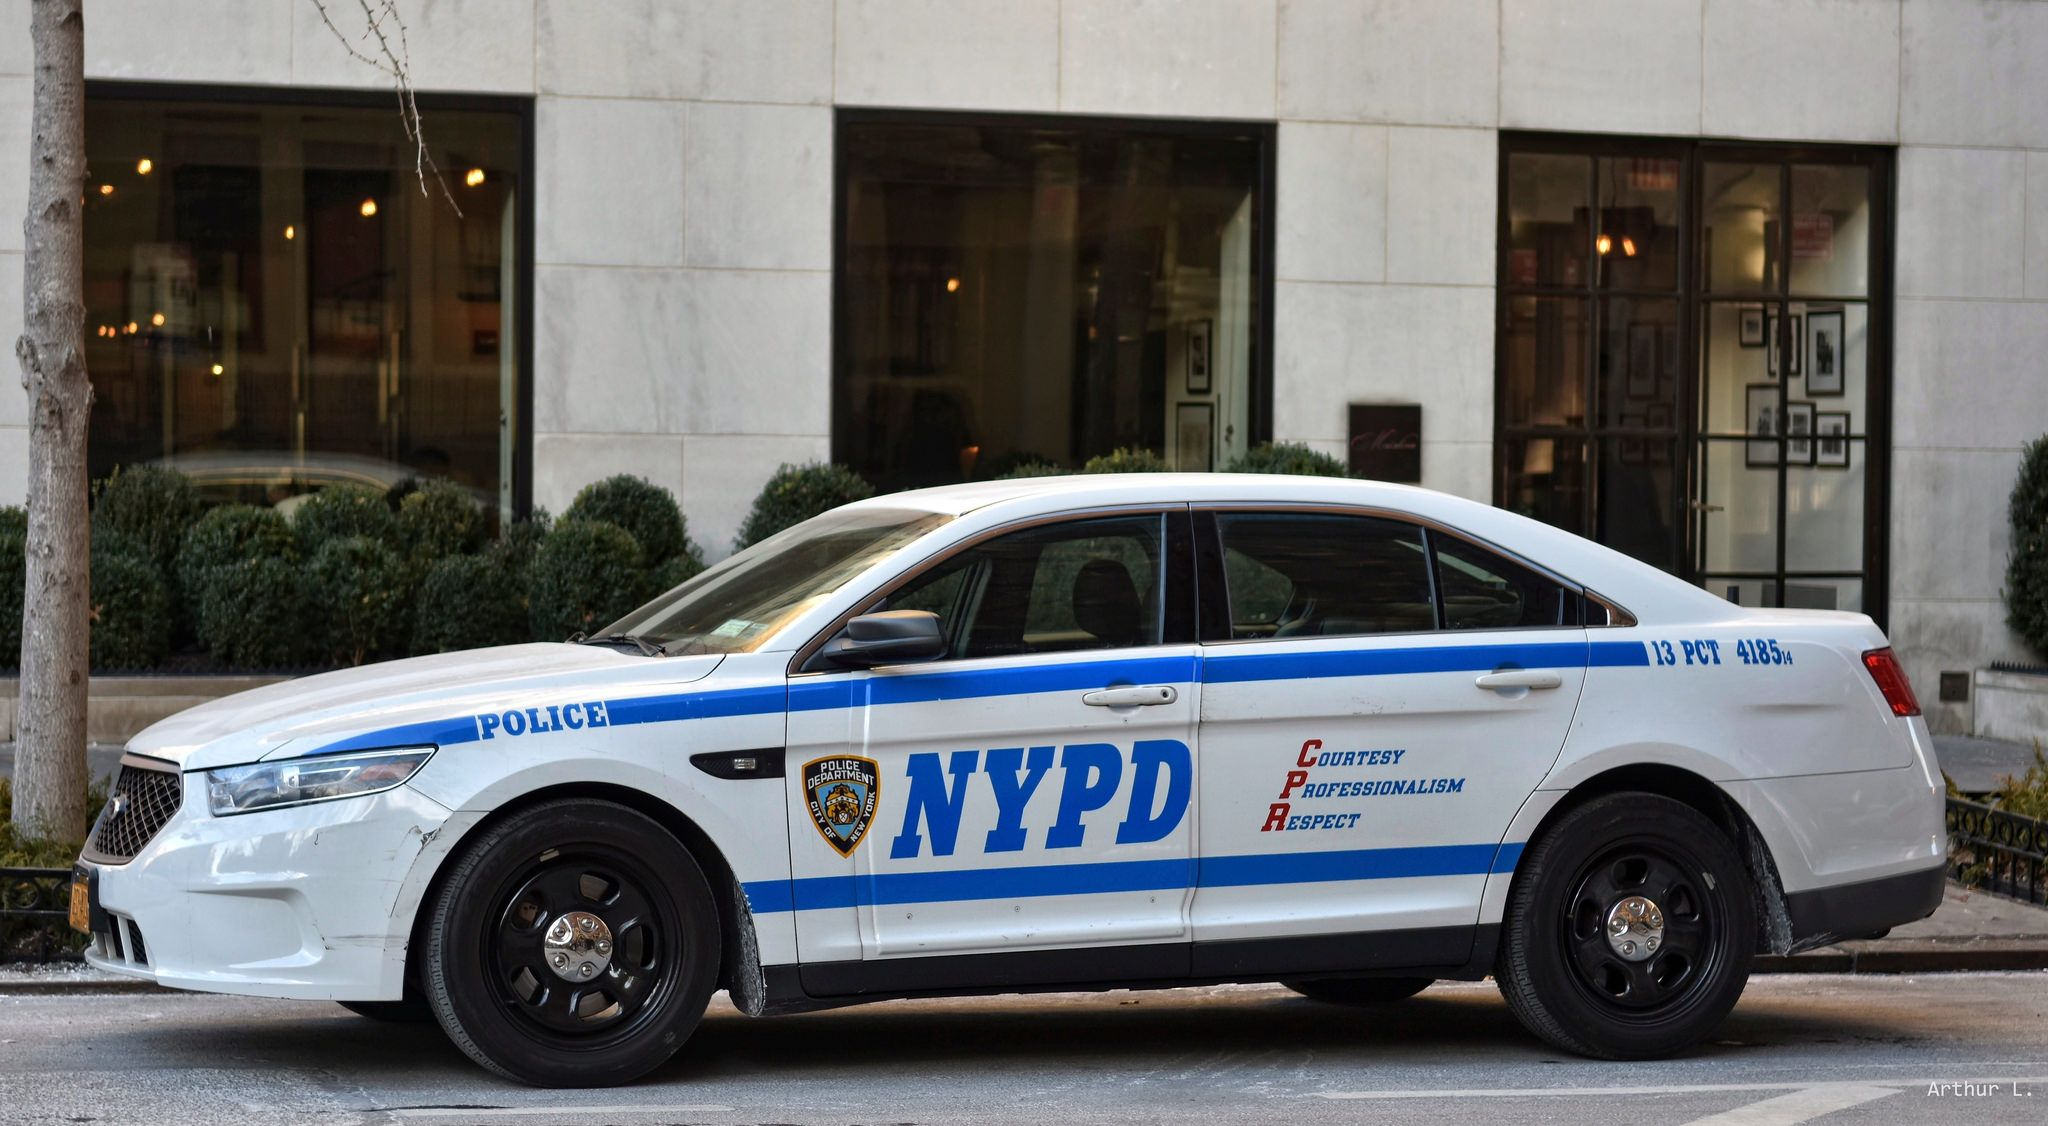 6a2e77930 NYPD - 13th Pct 4185 | NYPD! | 2014 ford taurus, New york police, Police